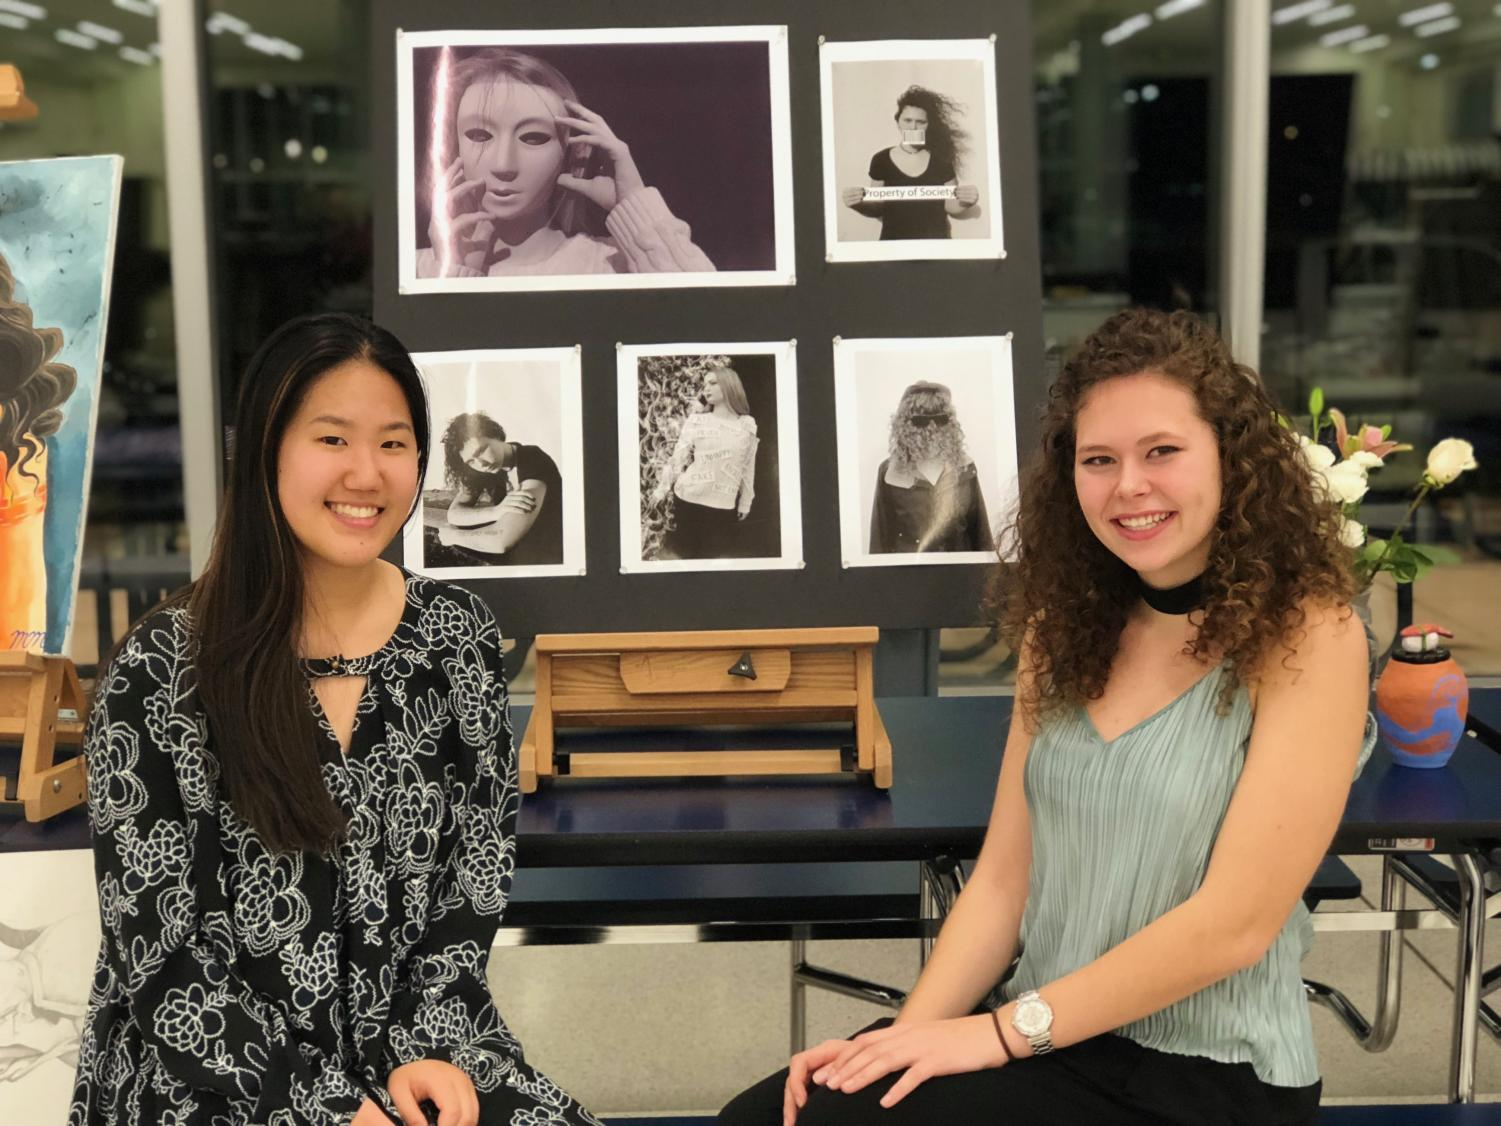 """Senior Raquel Sobczak was the subject of a piece, as well as the artist of two pieces. """"It's a great experience. We have all different types of art all in one event, and we get to see other people's talents,"""" Sobczak said."""